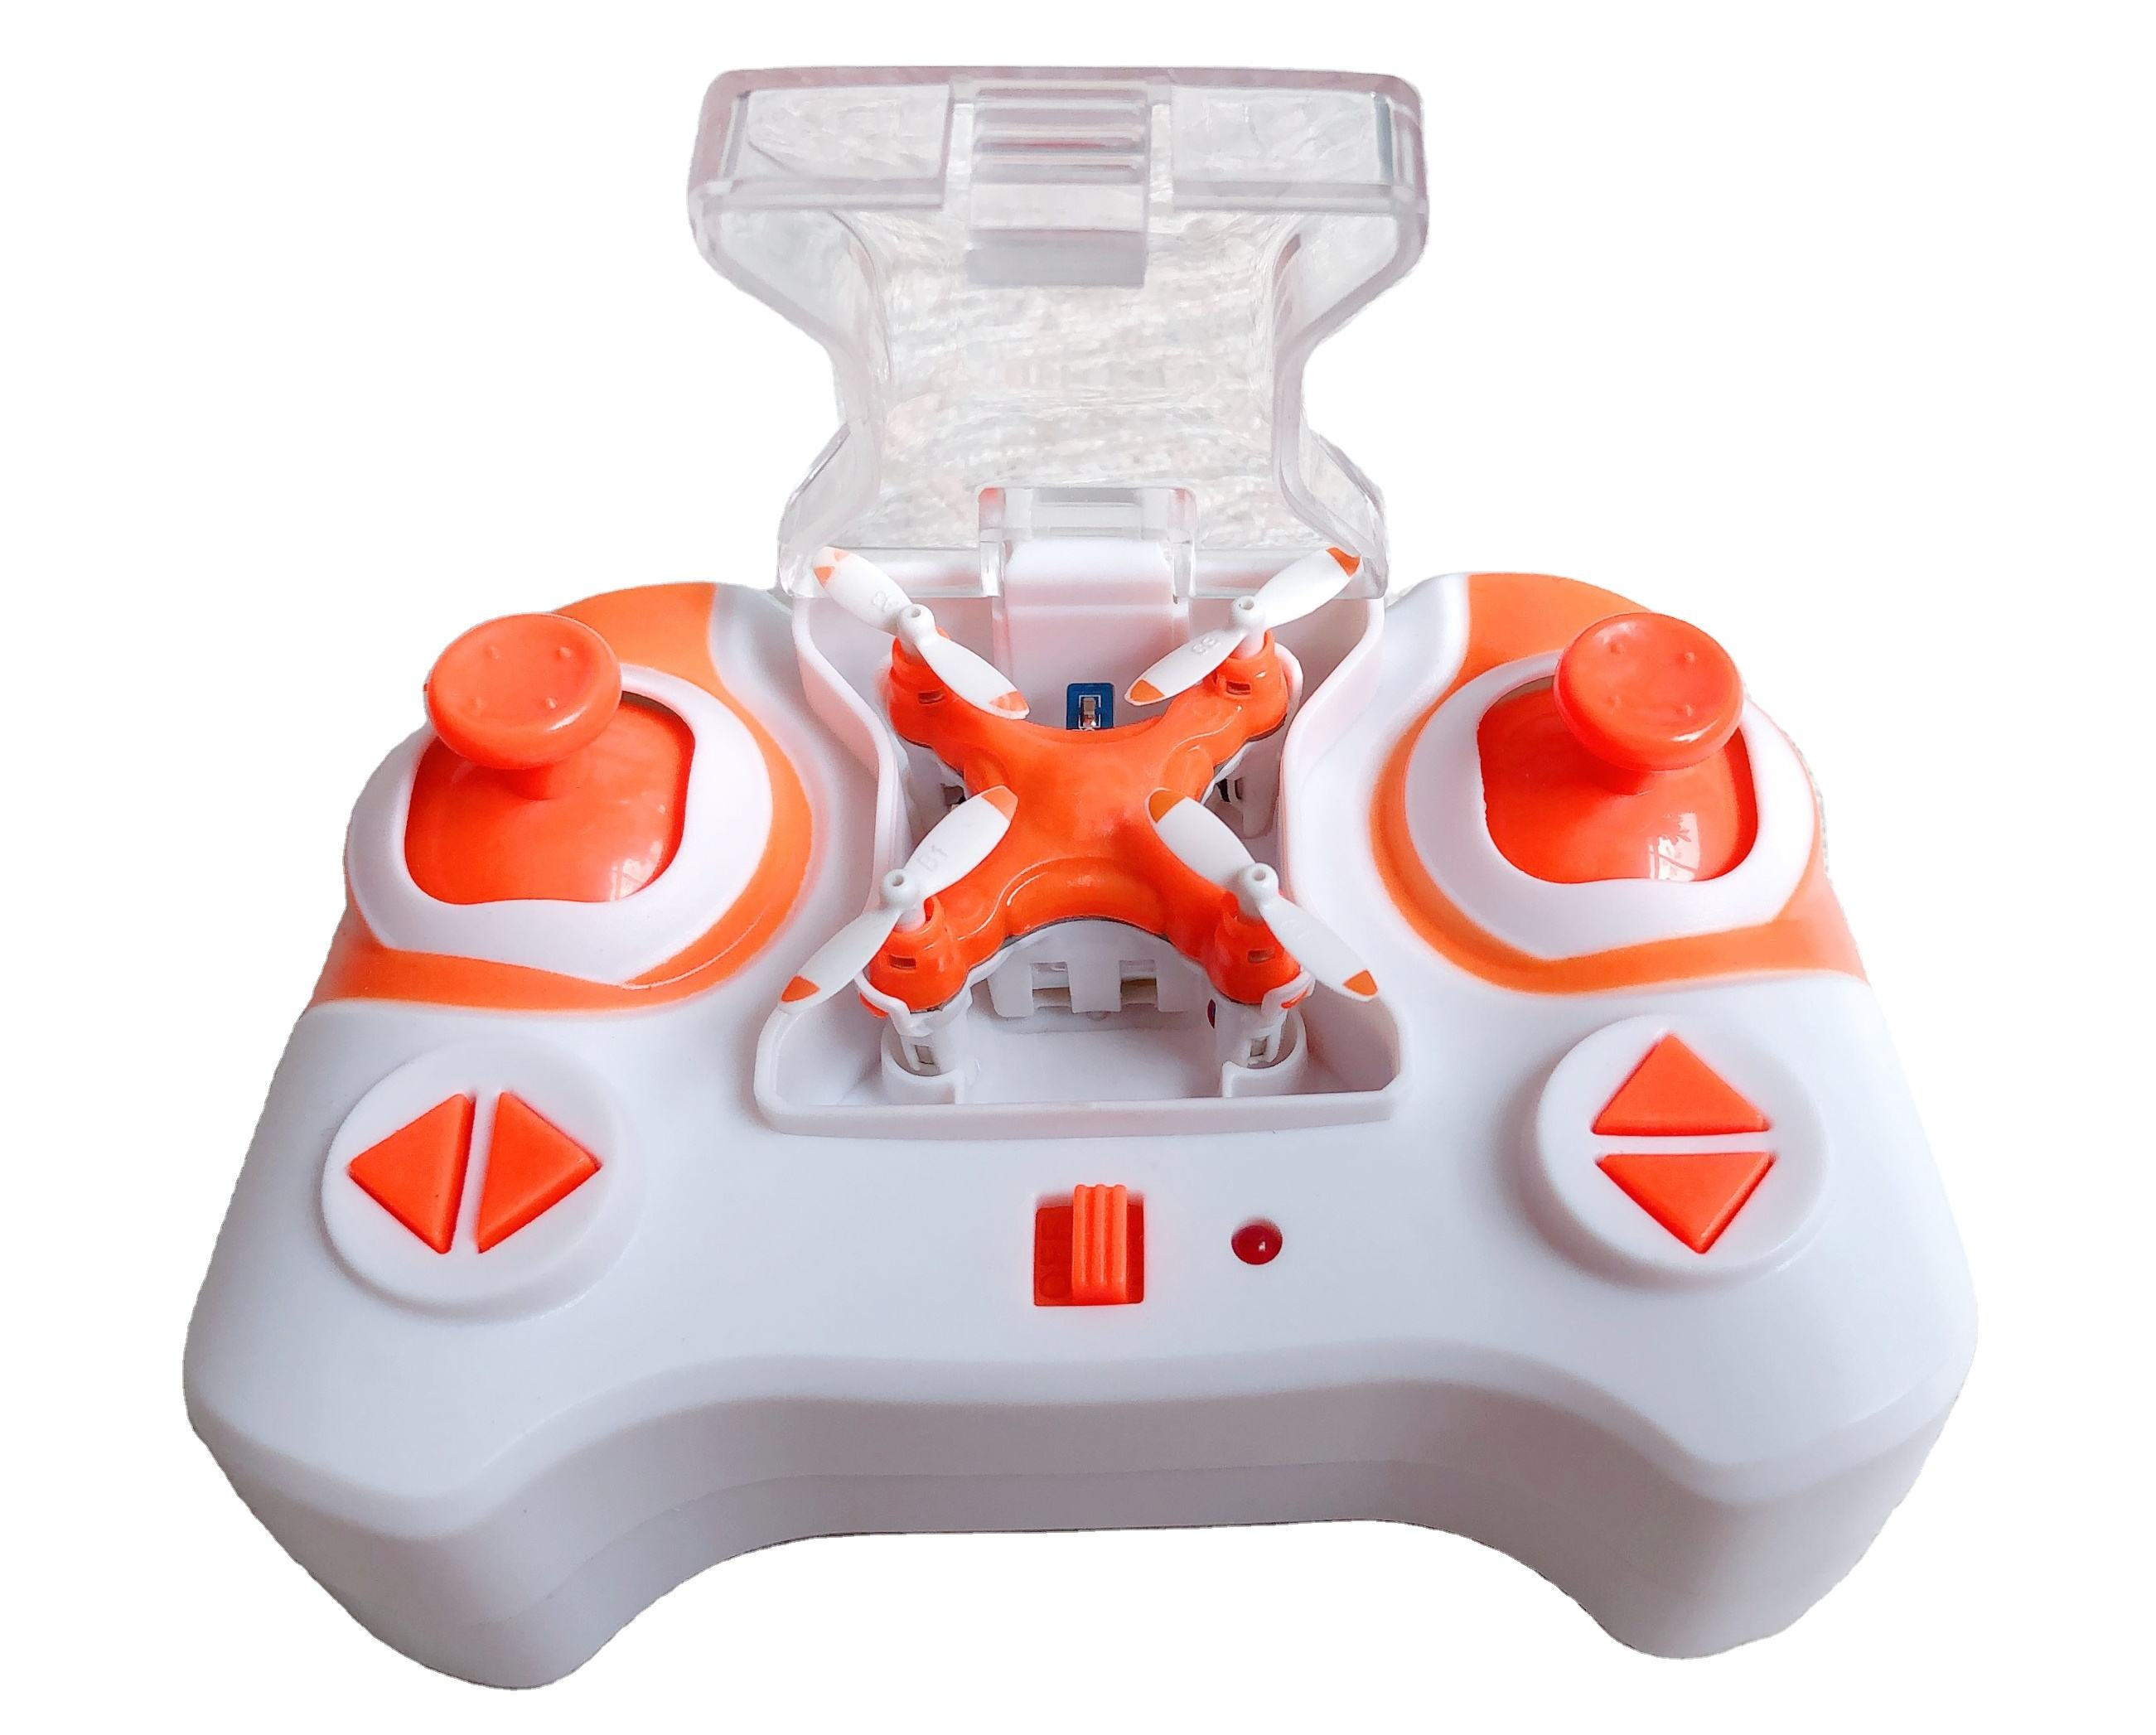 SKYKING SG-F1 Radio Control Toys Low Price Portable Pocket Long Range Quadcopter RC UFO Aeroplane Children's Day Gifts(Orange)